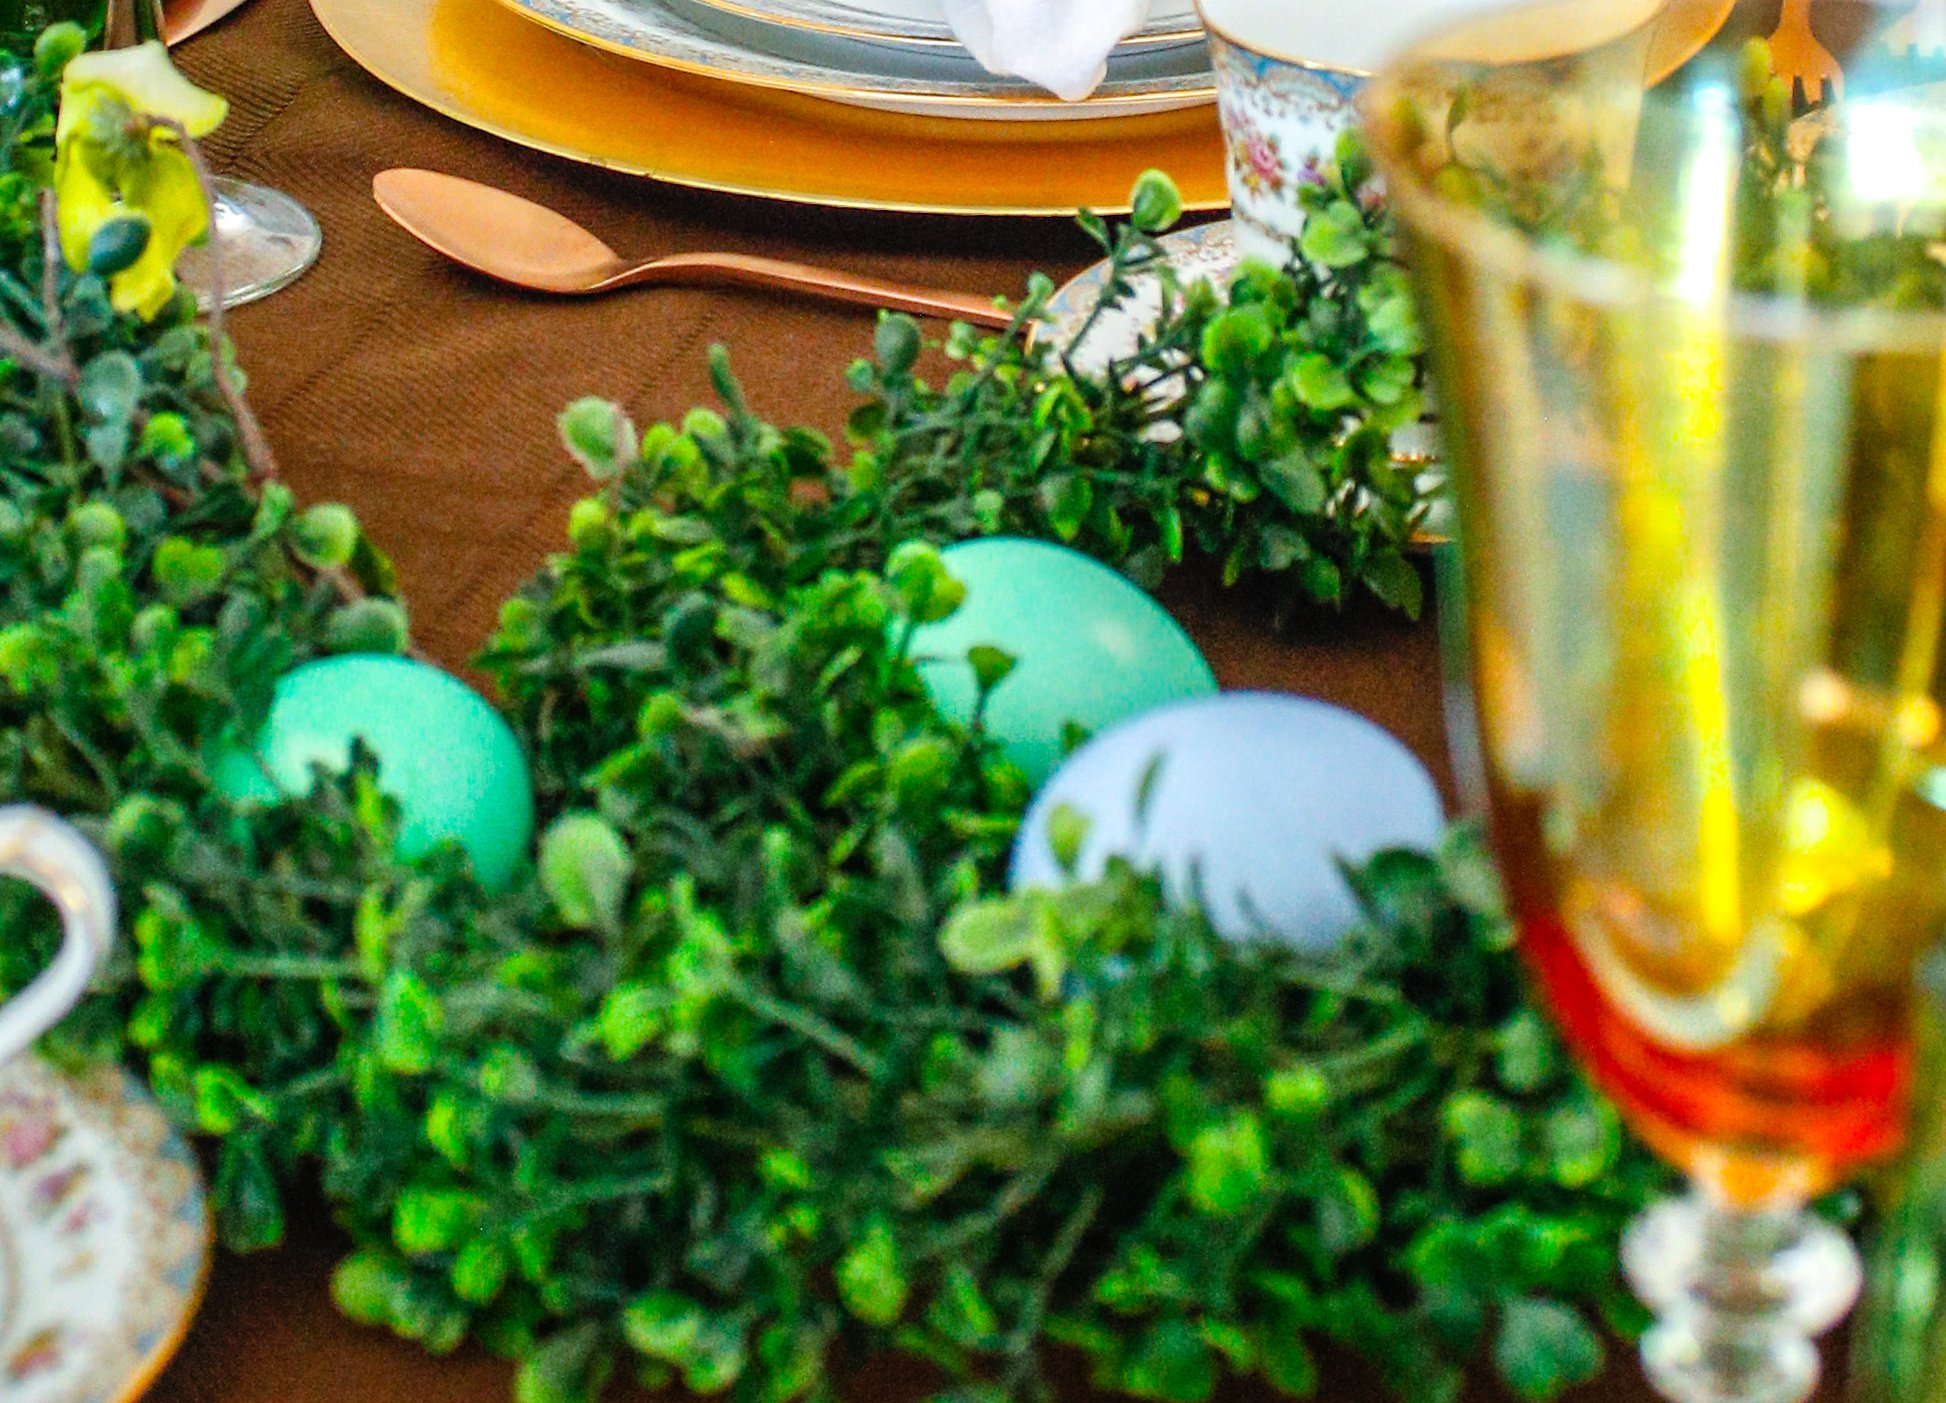 Use dyed Easter eggs for your table decor